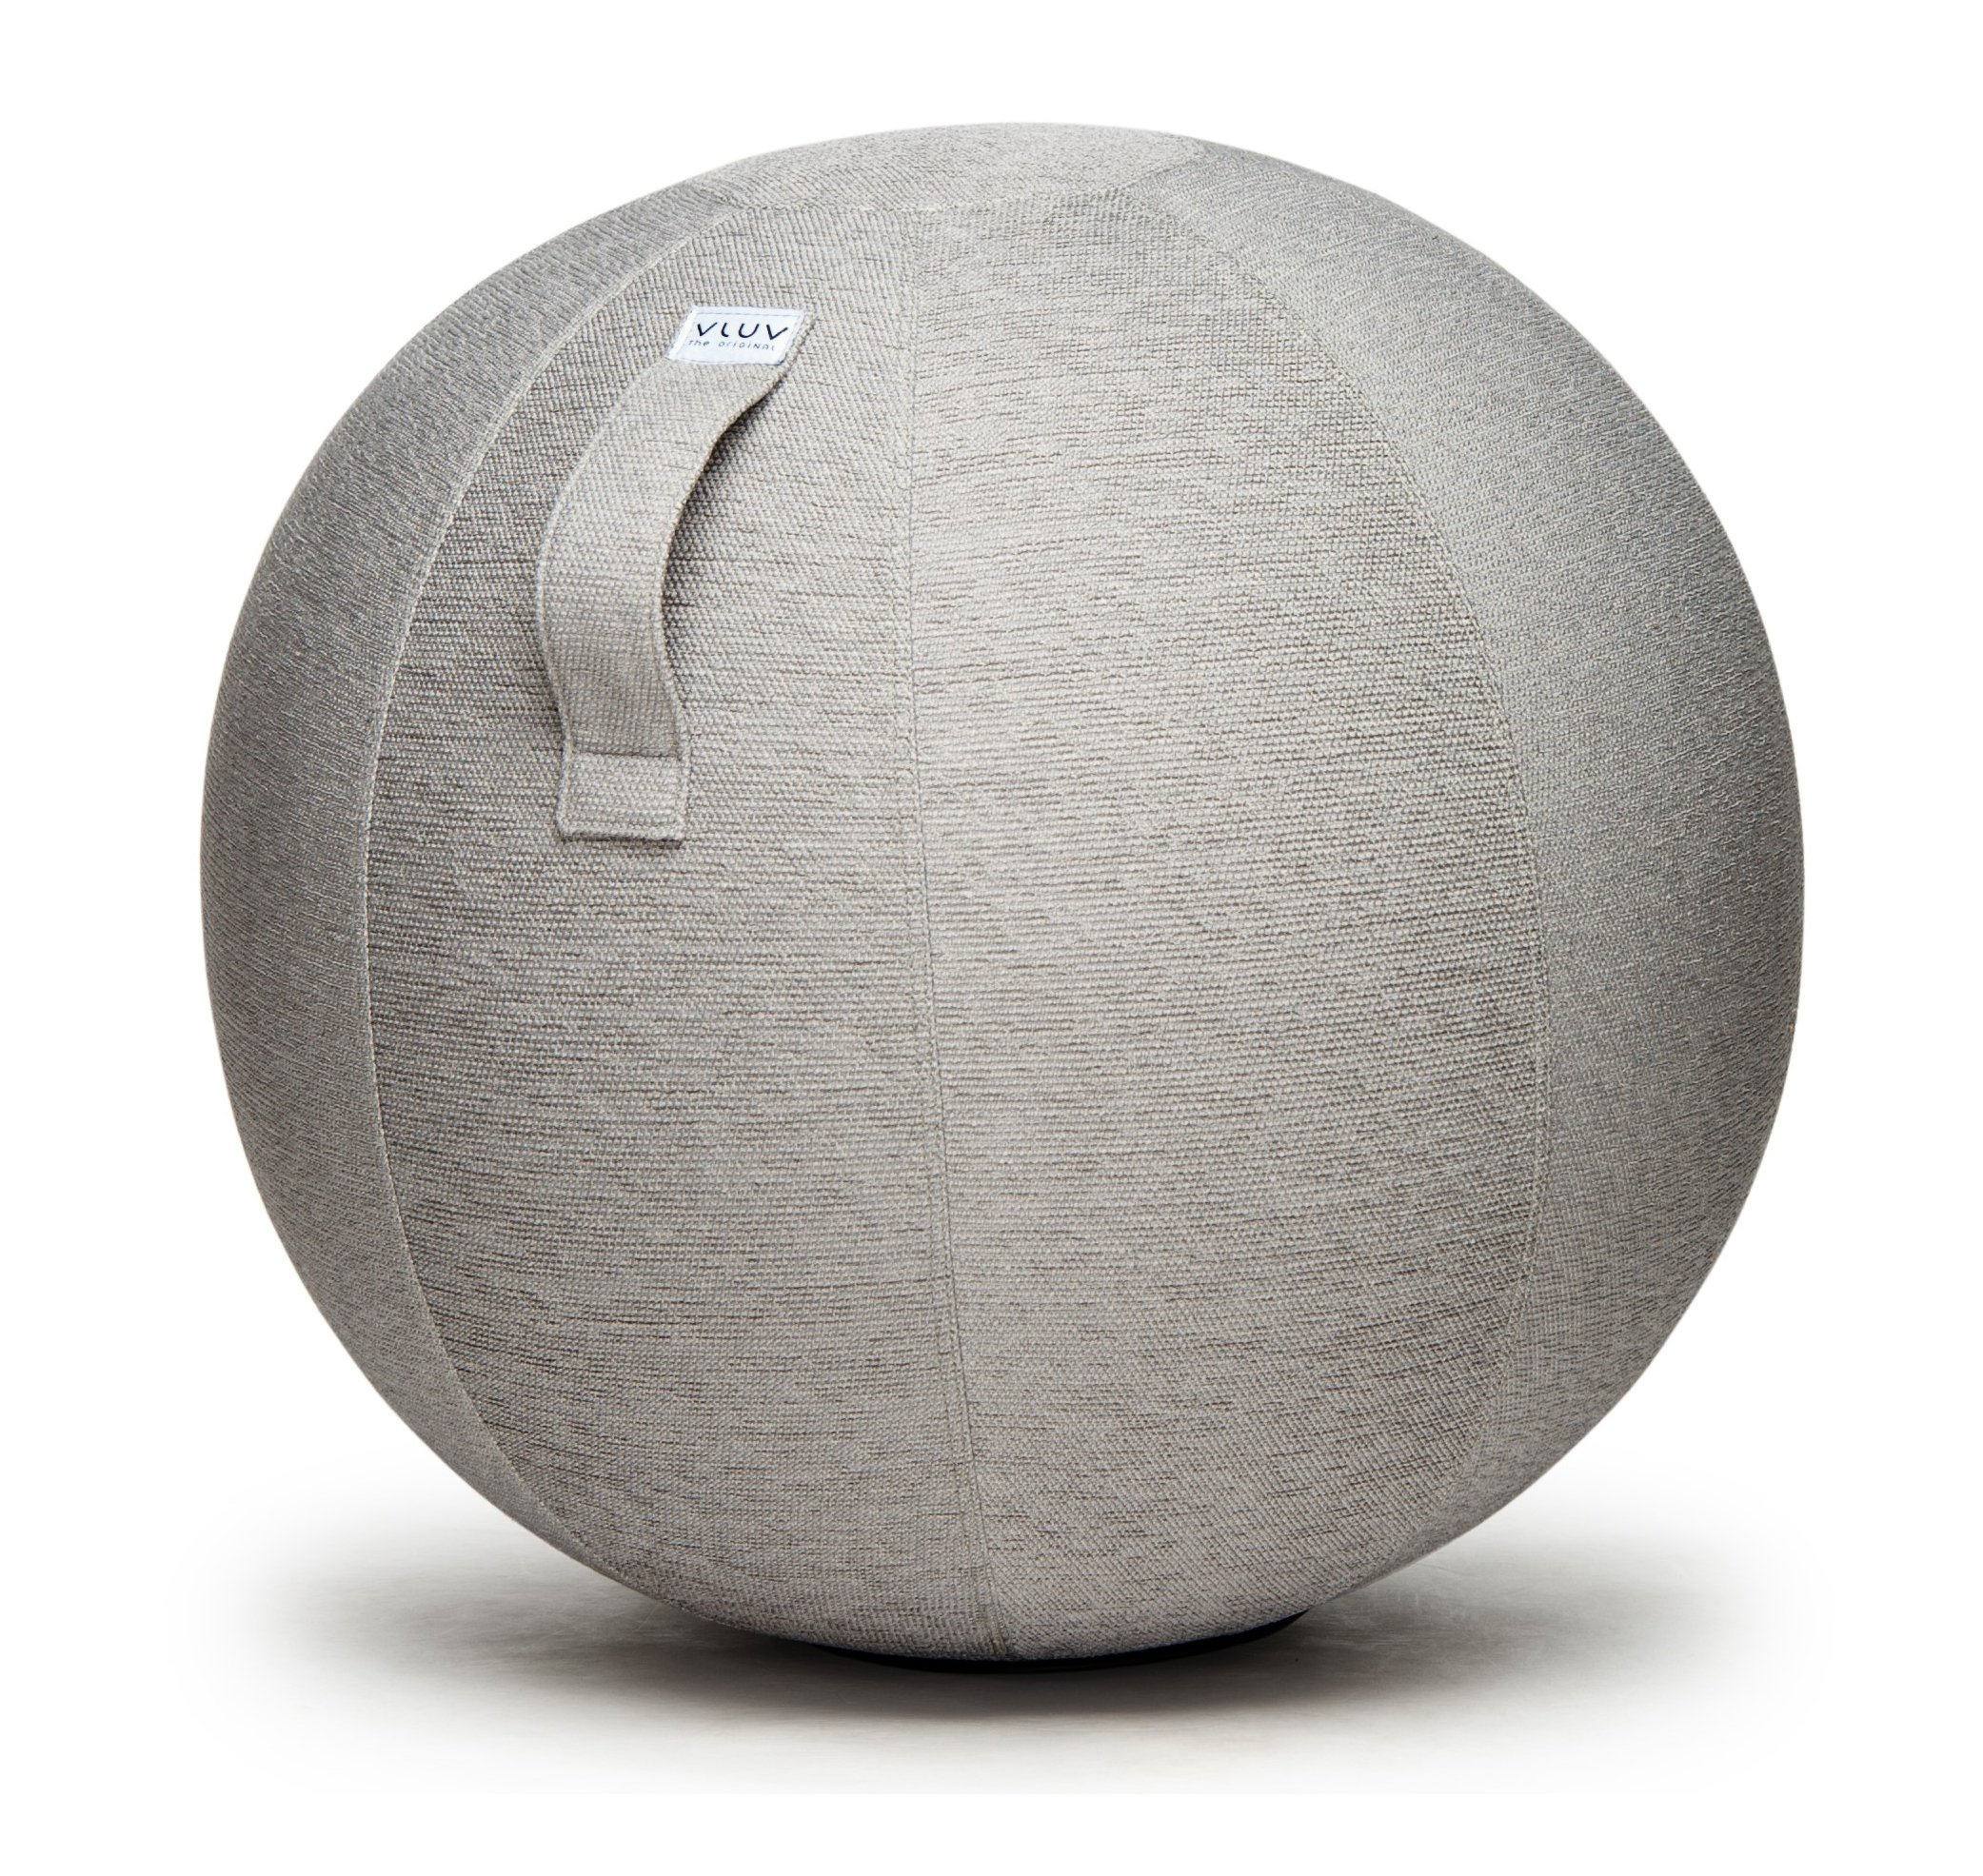 VLUV STOV 25.6'' Premium Quality Self-Standing Sitting Ball with Handle - Home or Office Chair and Exercise Ball for Yoga, Back Stretching, or Gym- Concrete Colored Upholstery Fabric Stability Ball